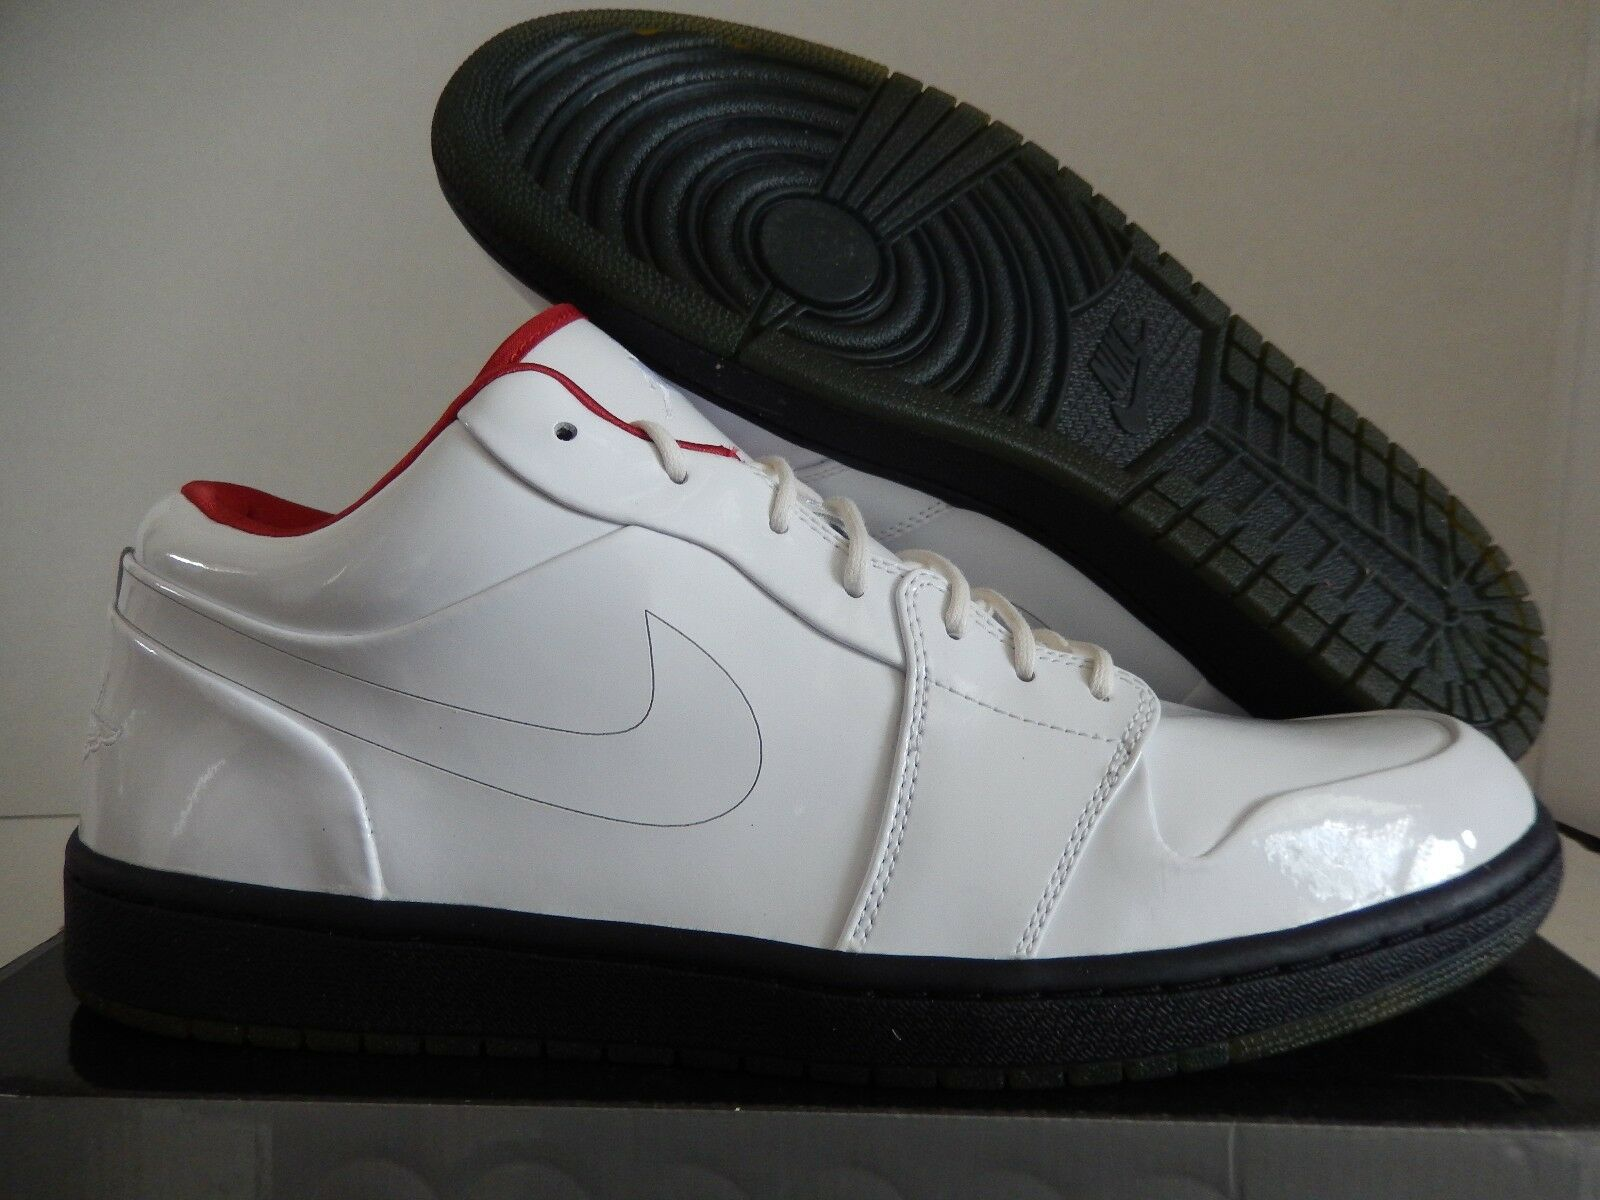 Nike Air Jordan 1 phat Low de Premium